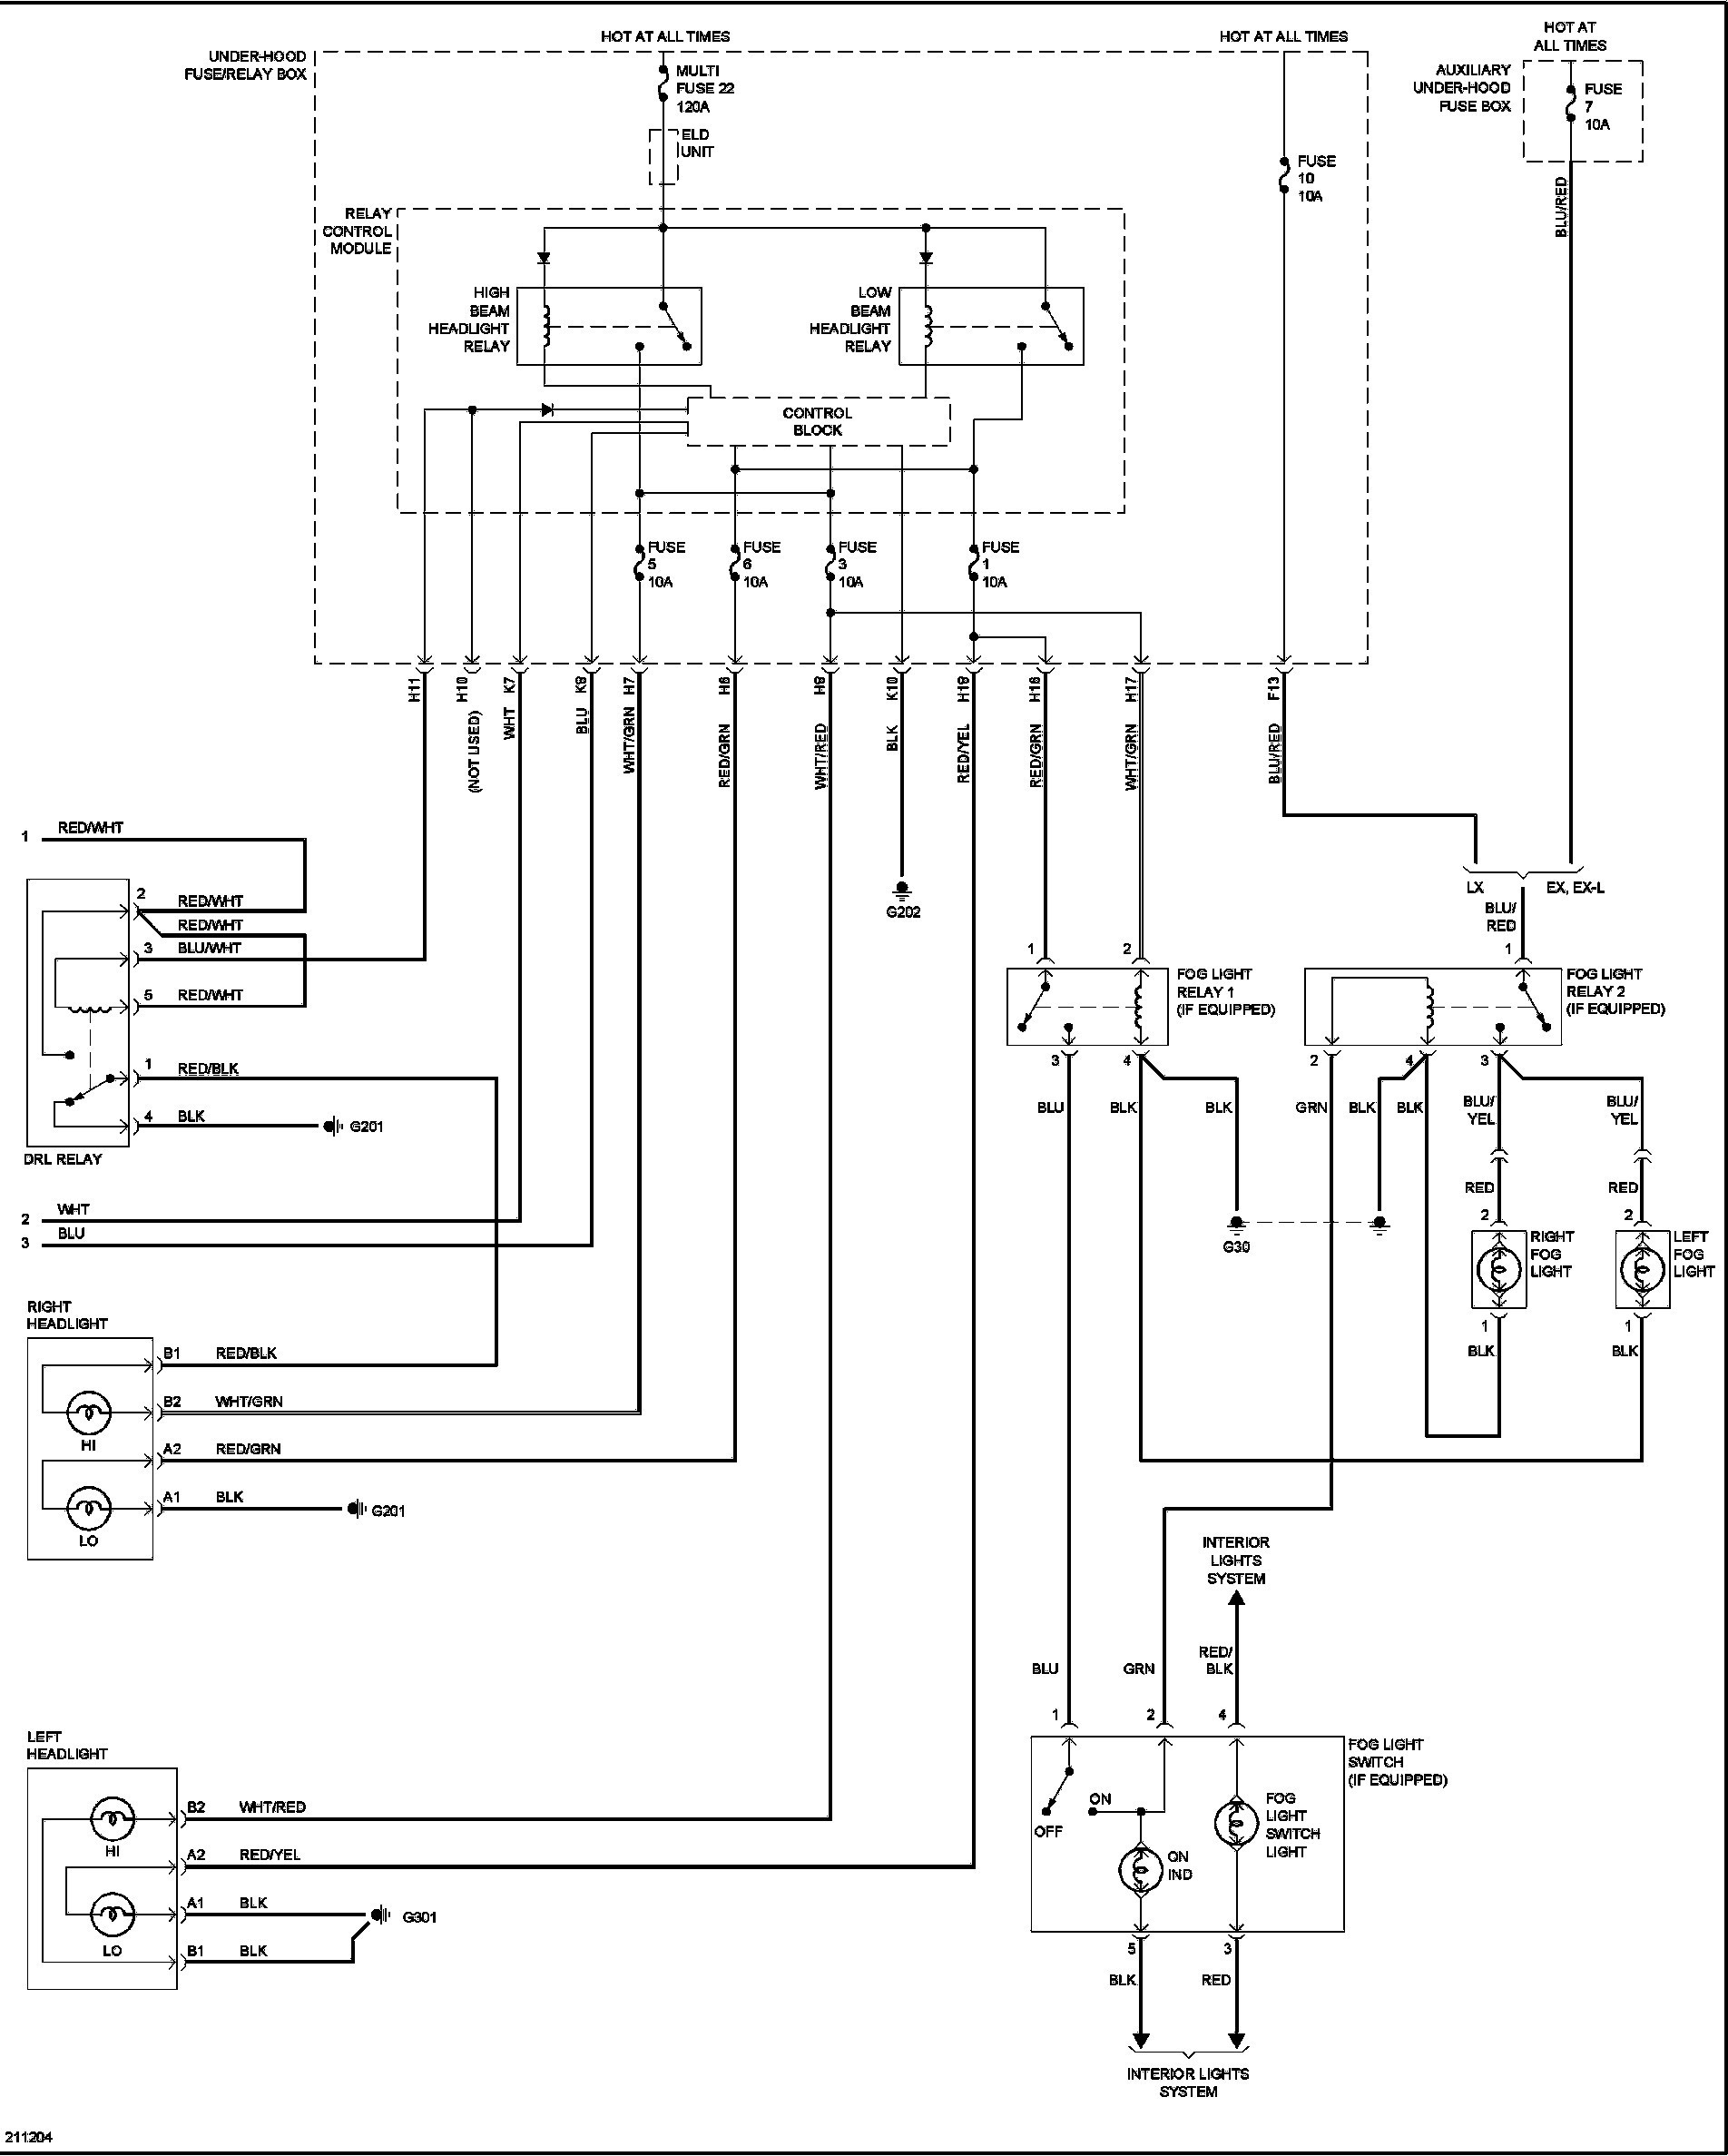 2004 Honda Crv Engine Parts Diagram | Reviewmotors.co